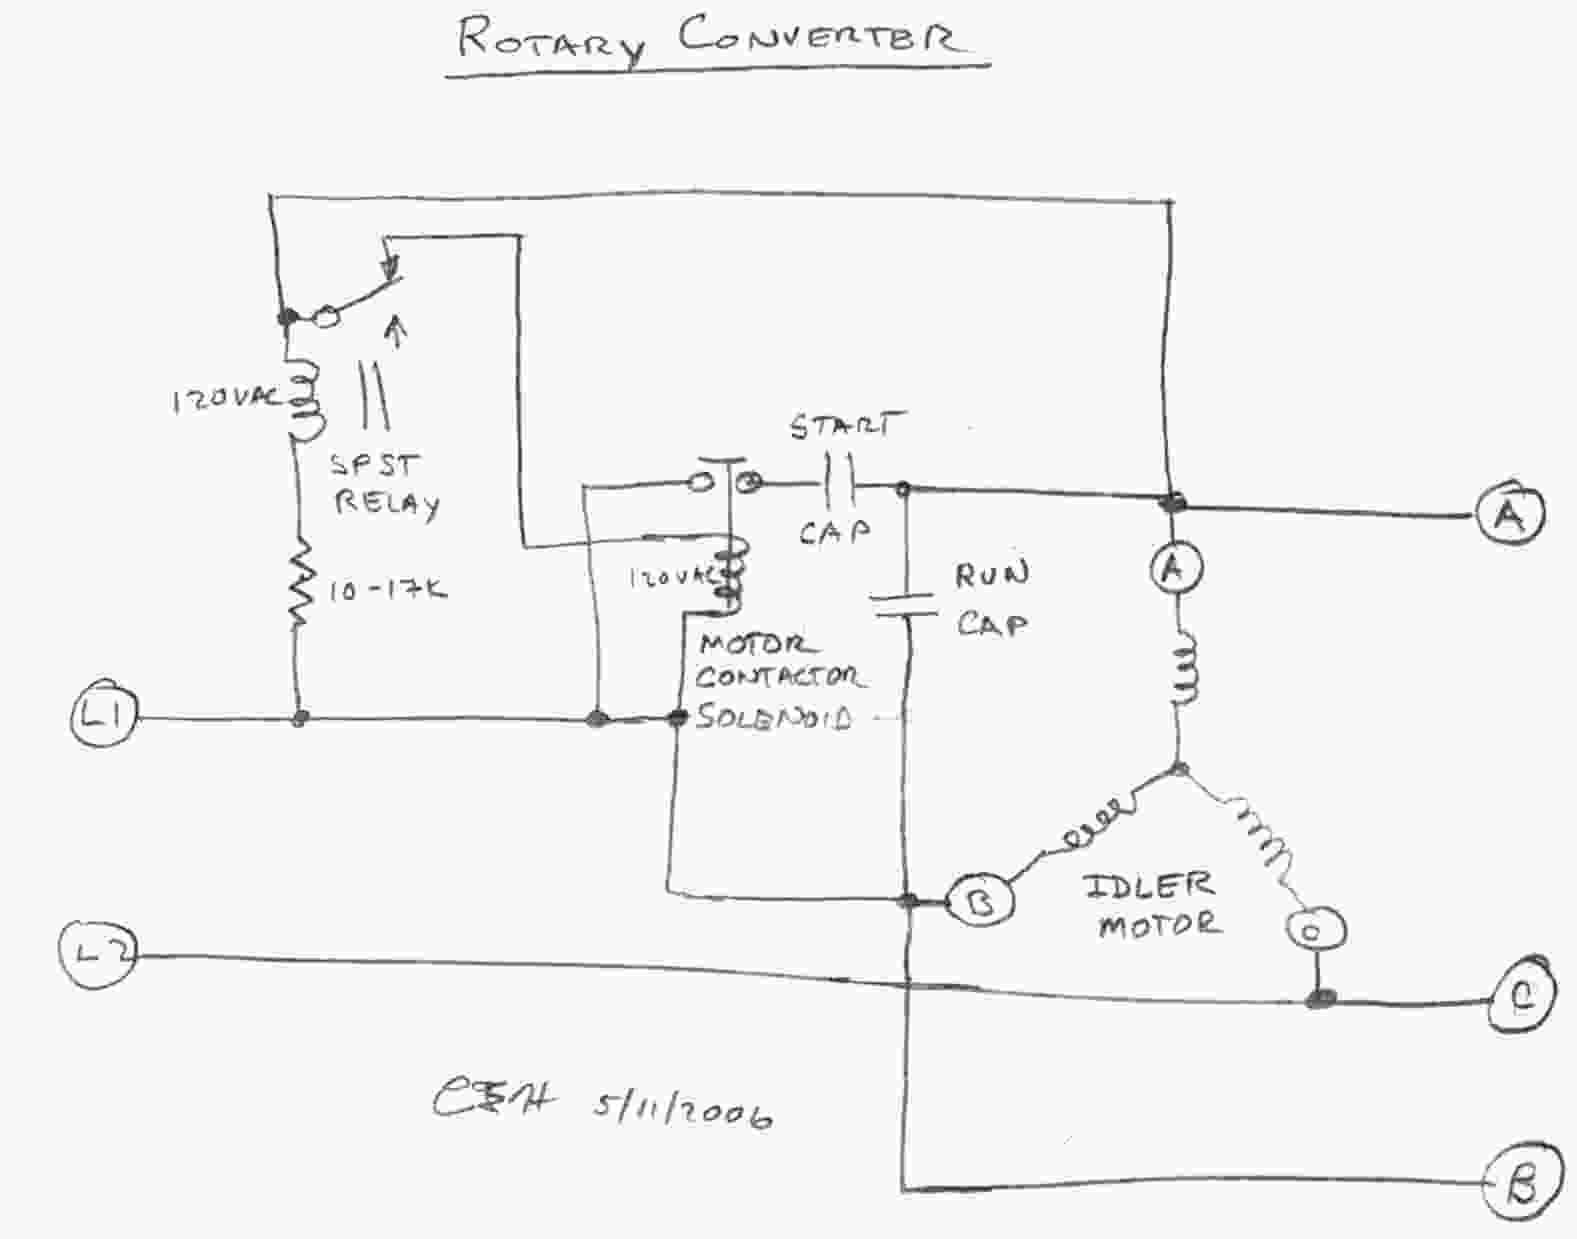 dayton dc speed control wiring diagram dayton dc speed control wiring diagram | free wiring diagram